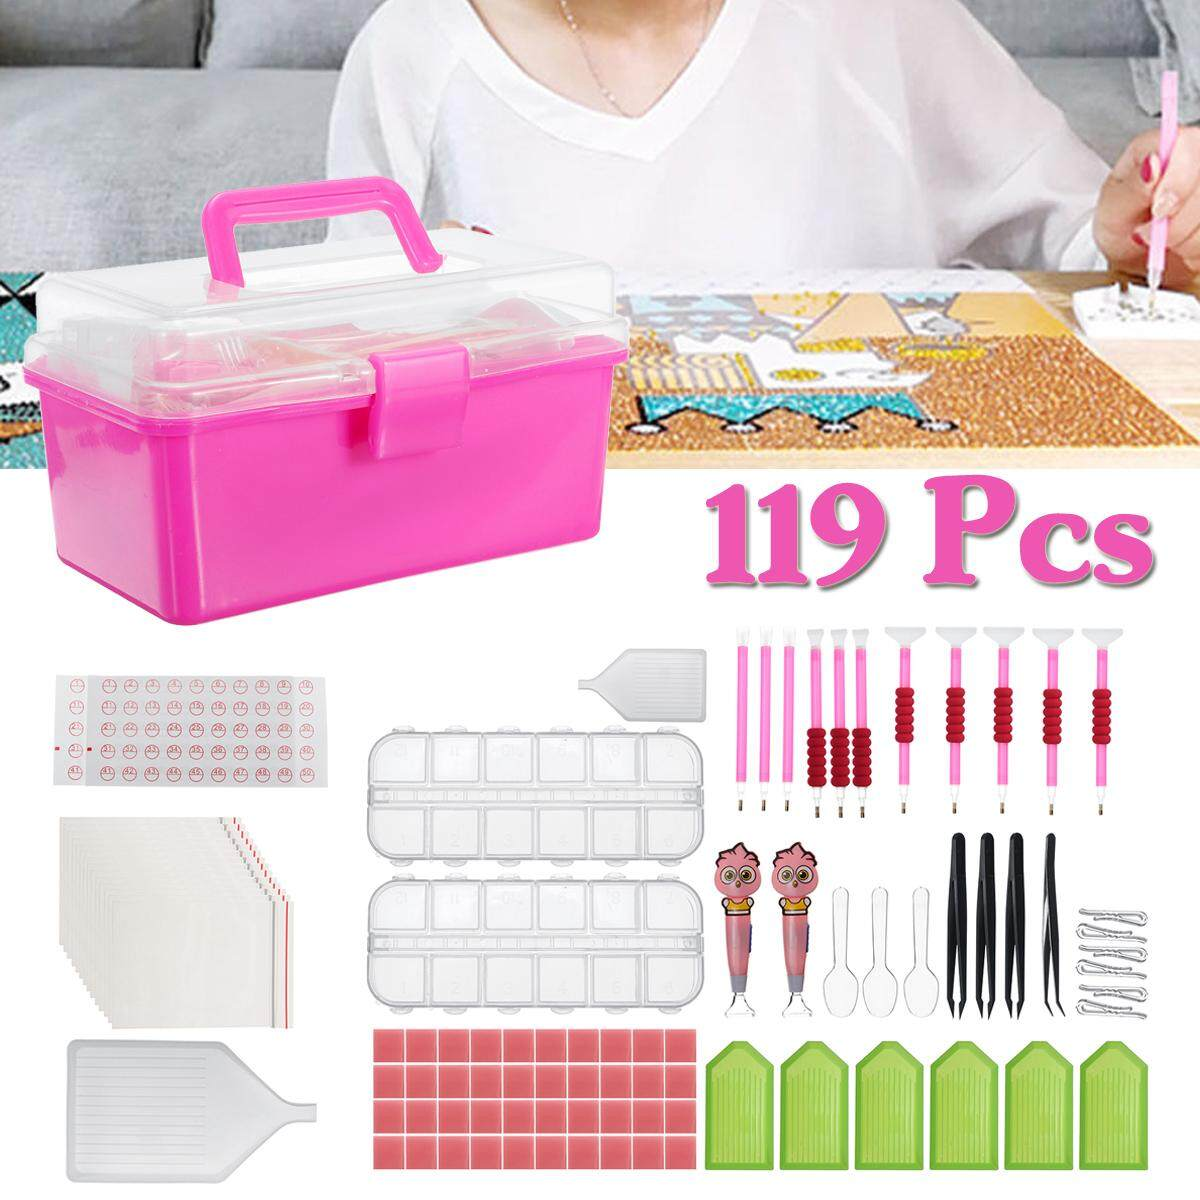 119Pcs Diamond Painting Tool Kit Suit Kit Hand Embroider Cross Stitch Accessory